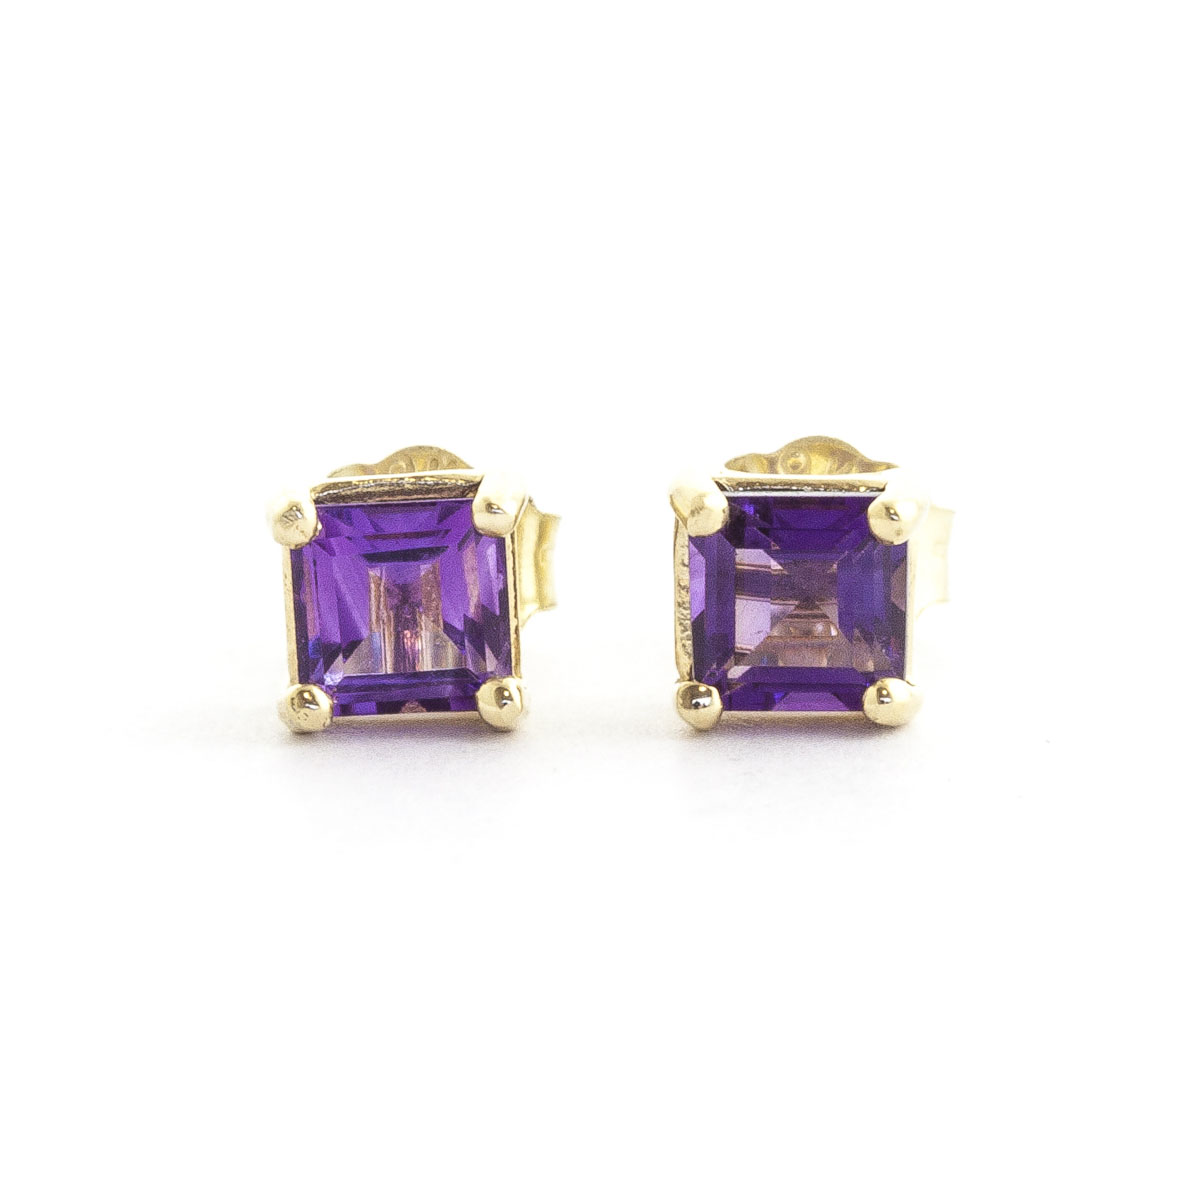 Image of Amethyst Alexandra Stud Earrings 0.65 ctw in 9ct Gold